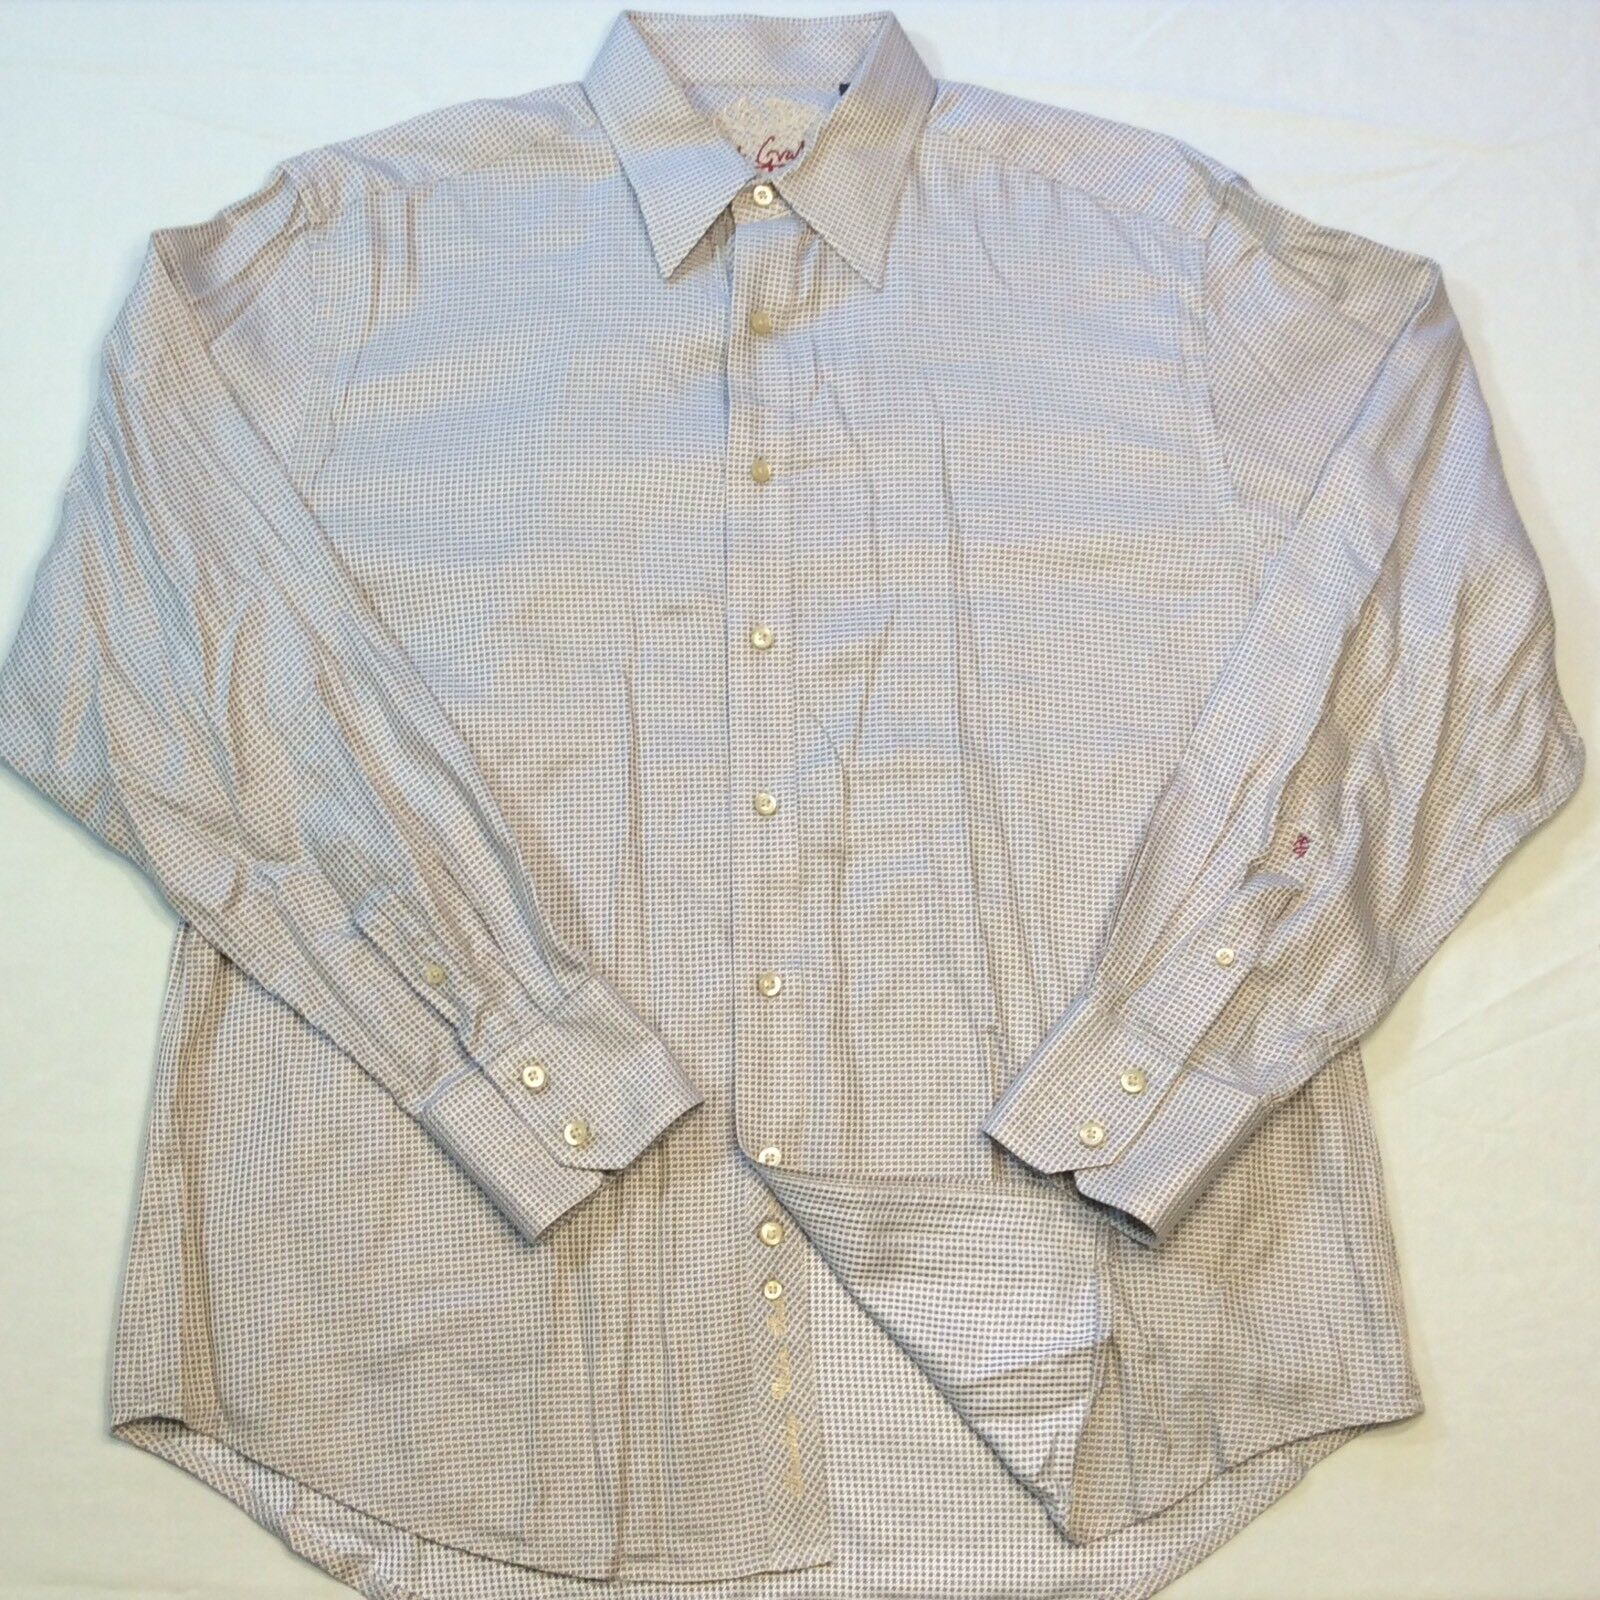 Robert Graham bluee White Print Long Sleeve Cotton Button Shirt Men's XL